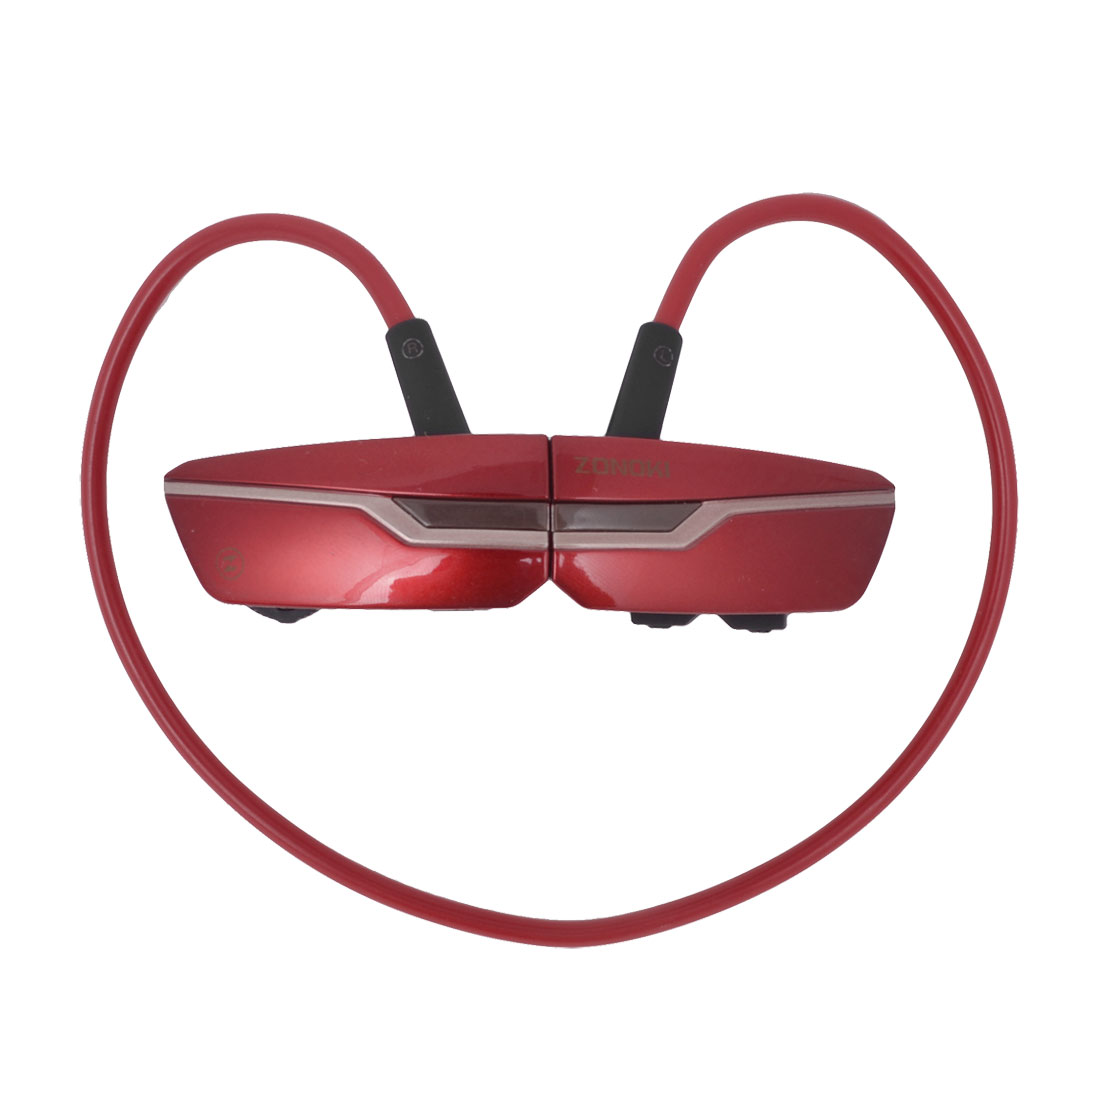 3.7V 150mAH Red Black Wireless bluetooth Stereo Headphone Headset w USB Cable